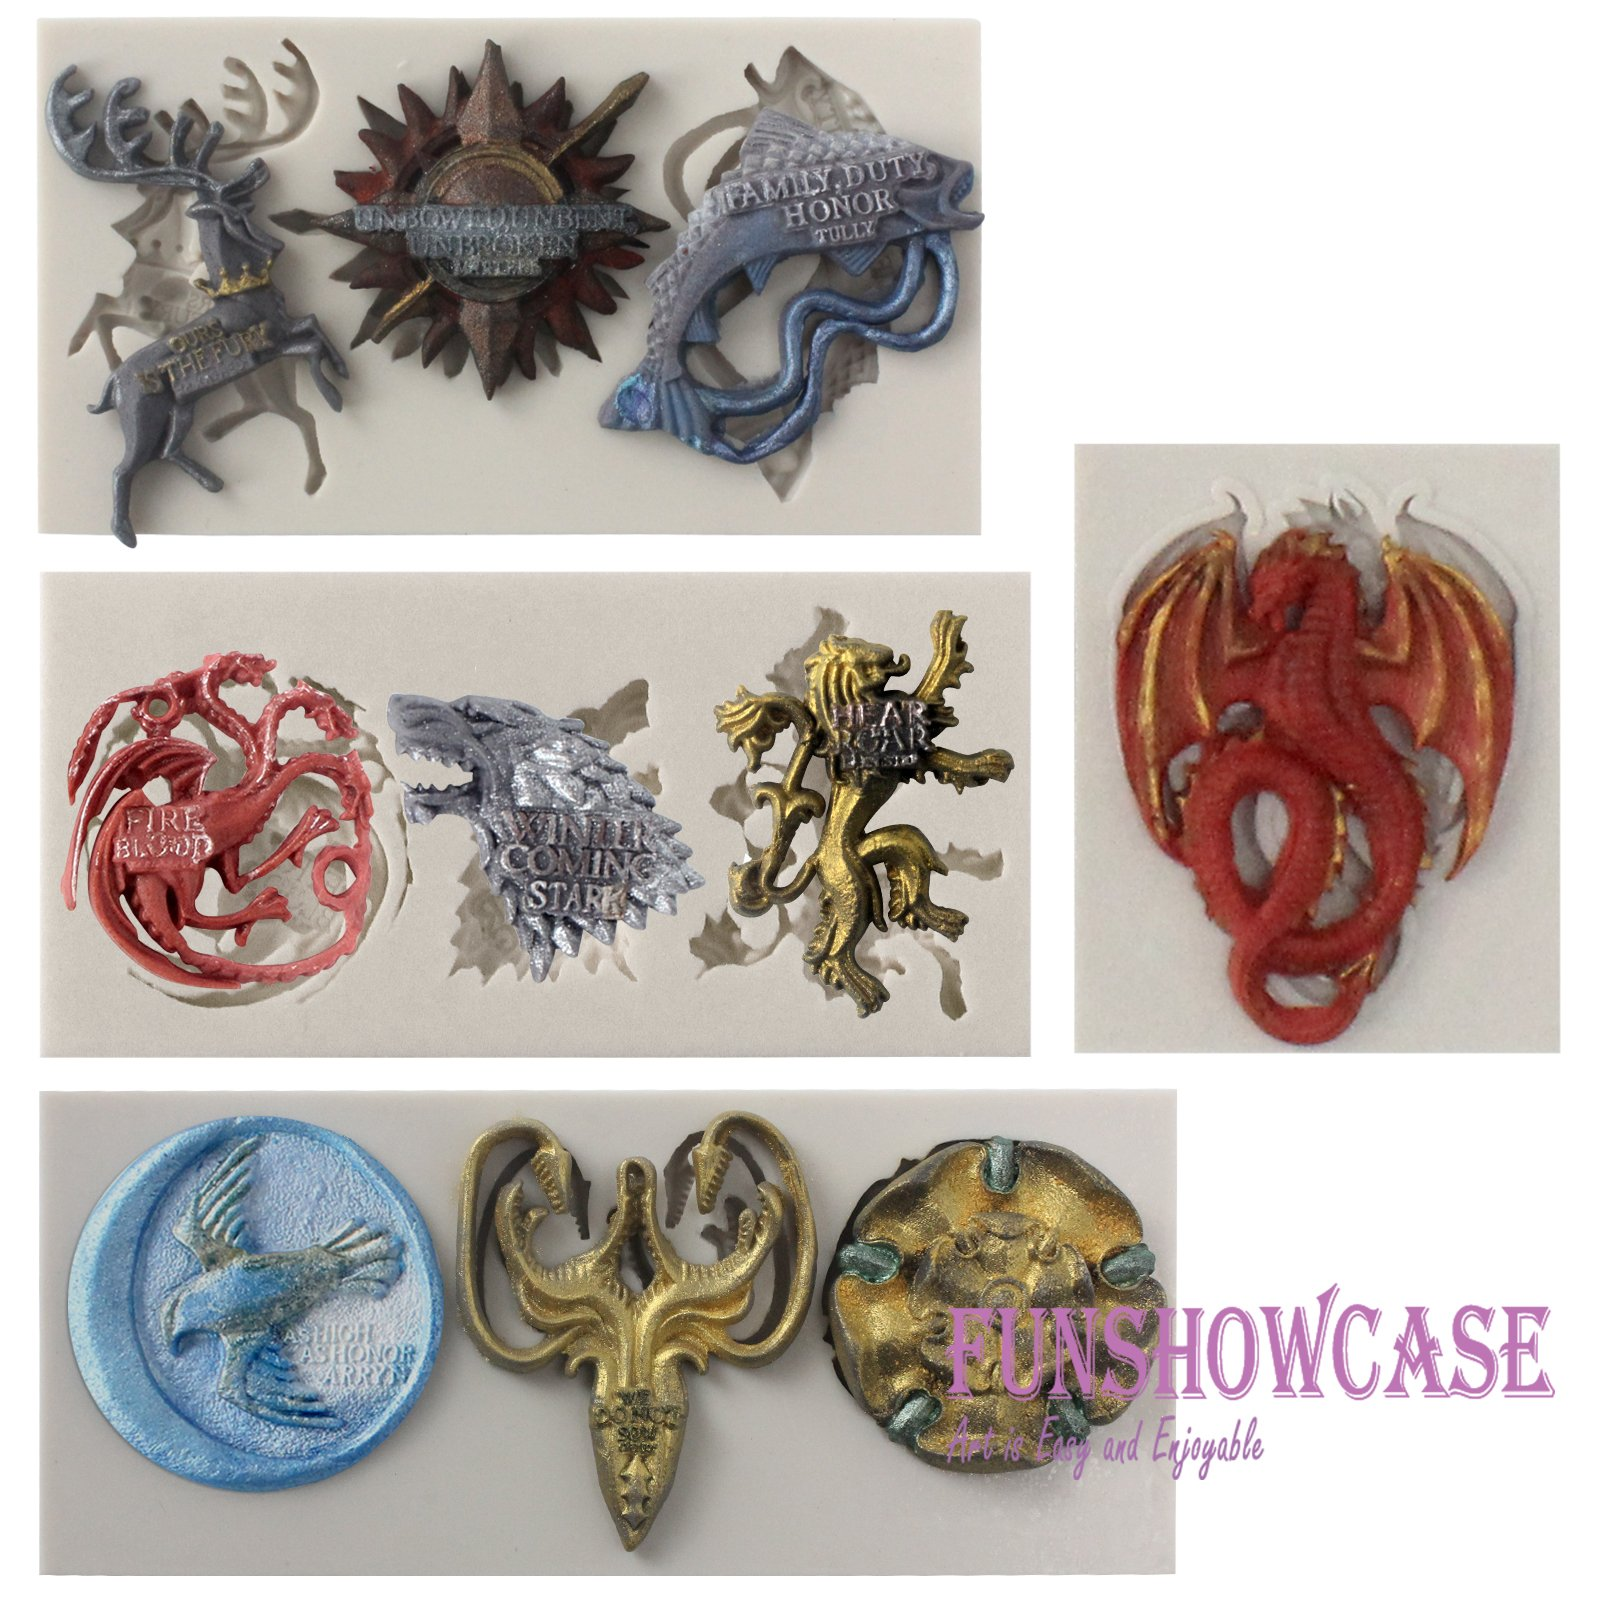 Funshowcase Game Thrones GOT inspired House Sigils and Mottos Silicone Molds for Sugarcraft, Fondant Cake Decoration, Cupcake Topper, Polymer Clay Resin Casting Jewelry and Crafting Projects, 4-in-set by FUNSHOWCASE (Image #1)